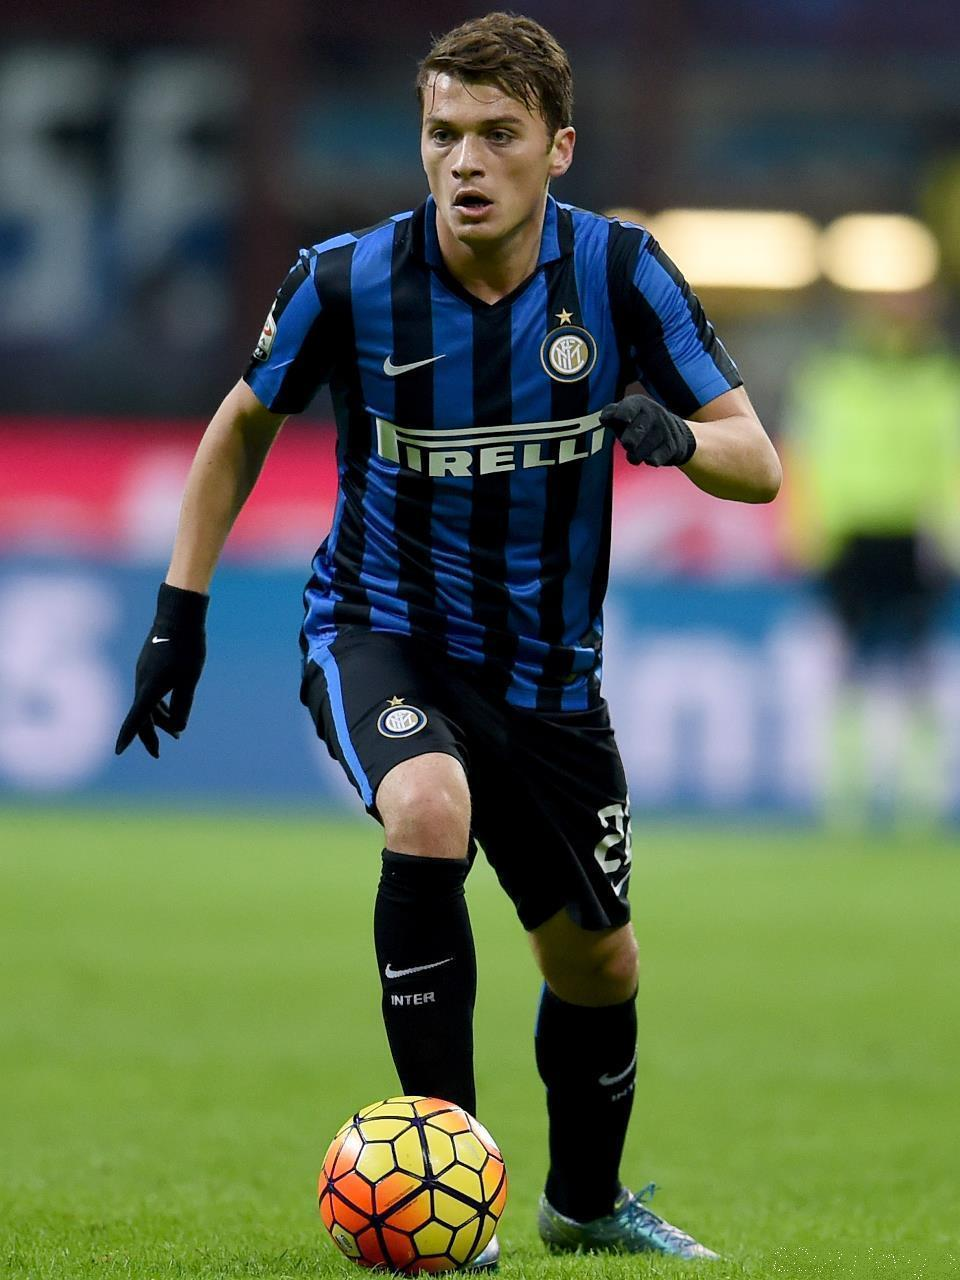 Inter-Milano-15-16-NIKE-home-kit.JPG